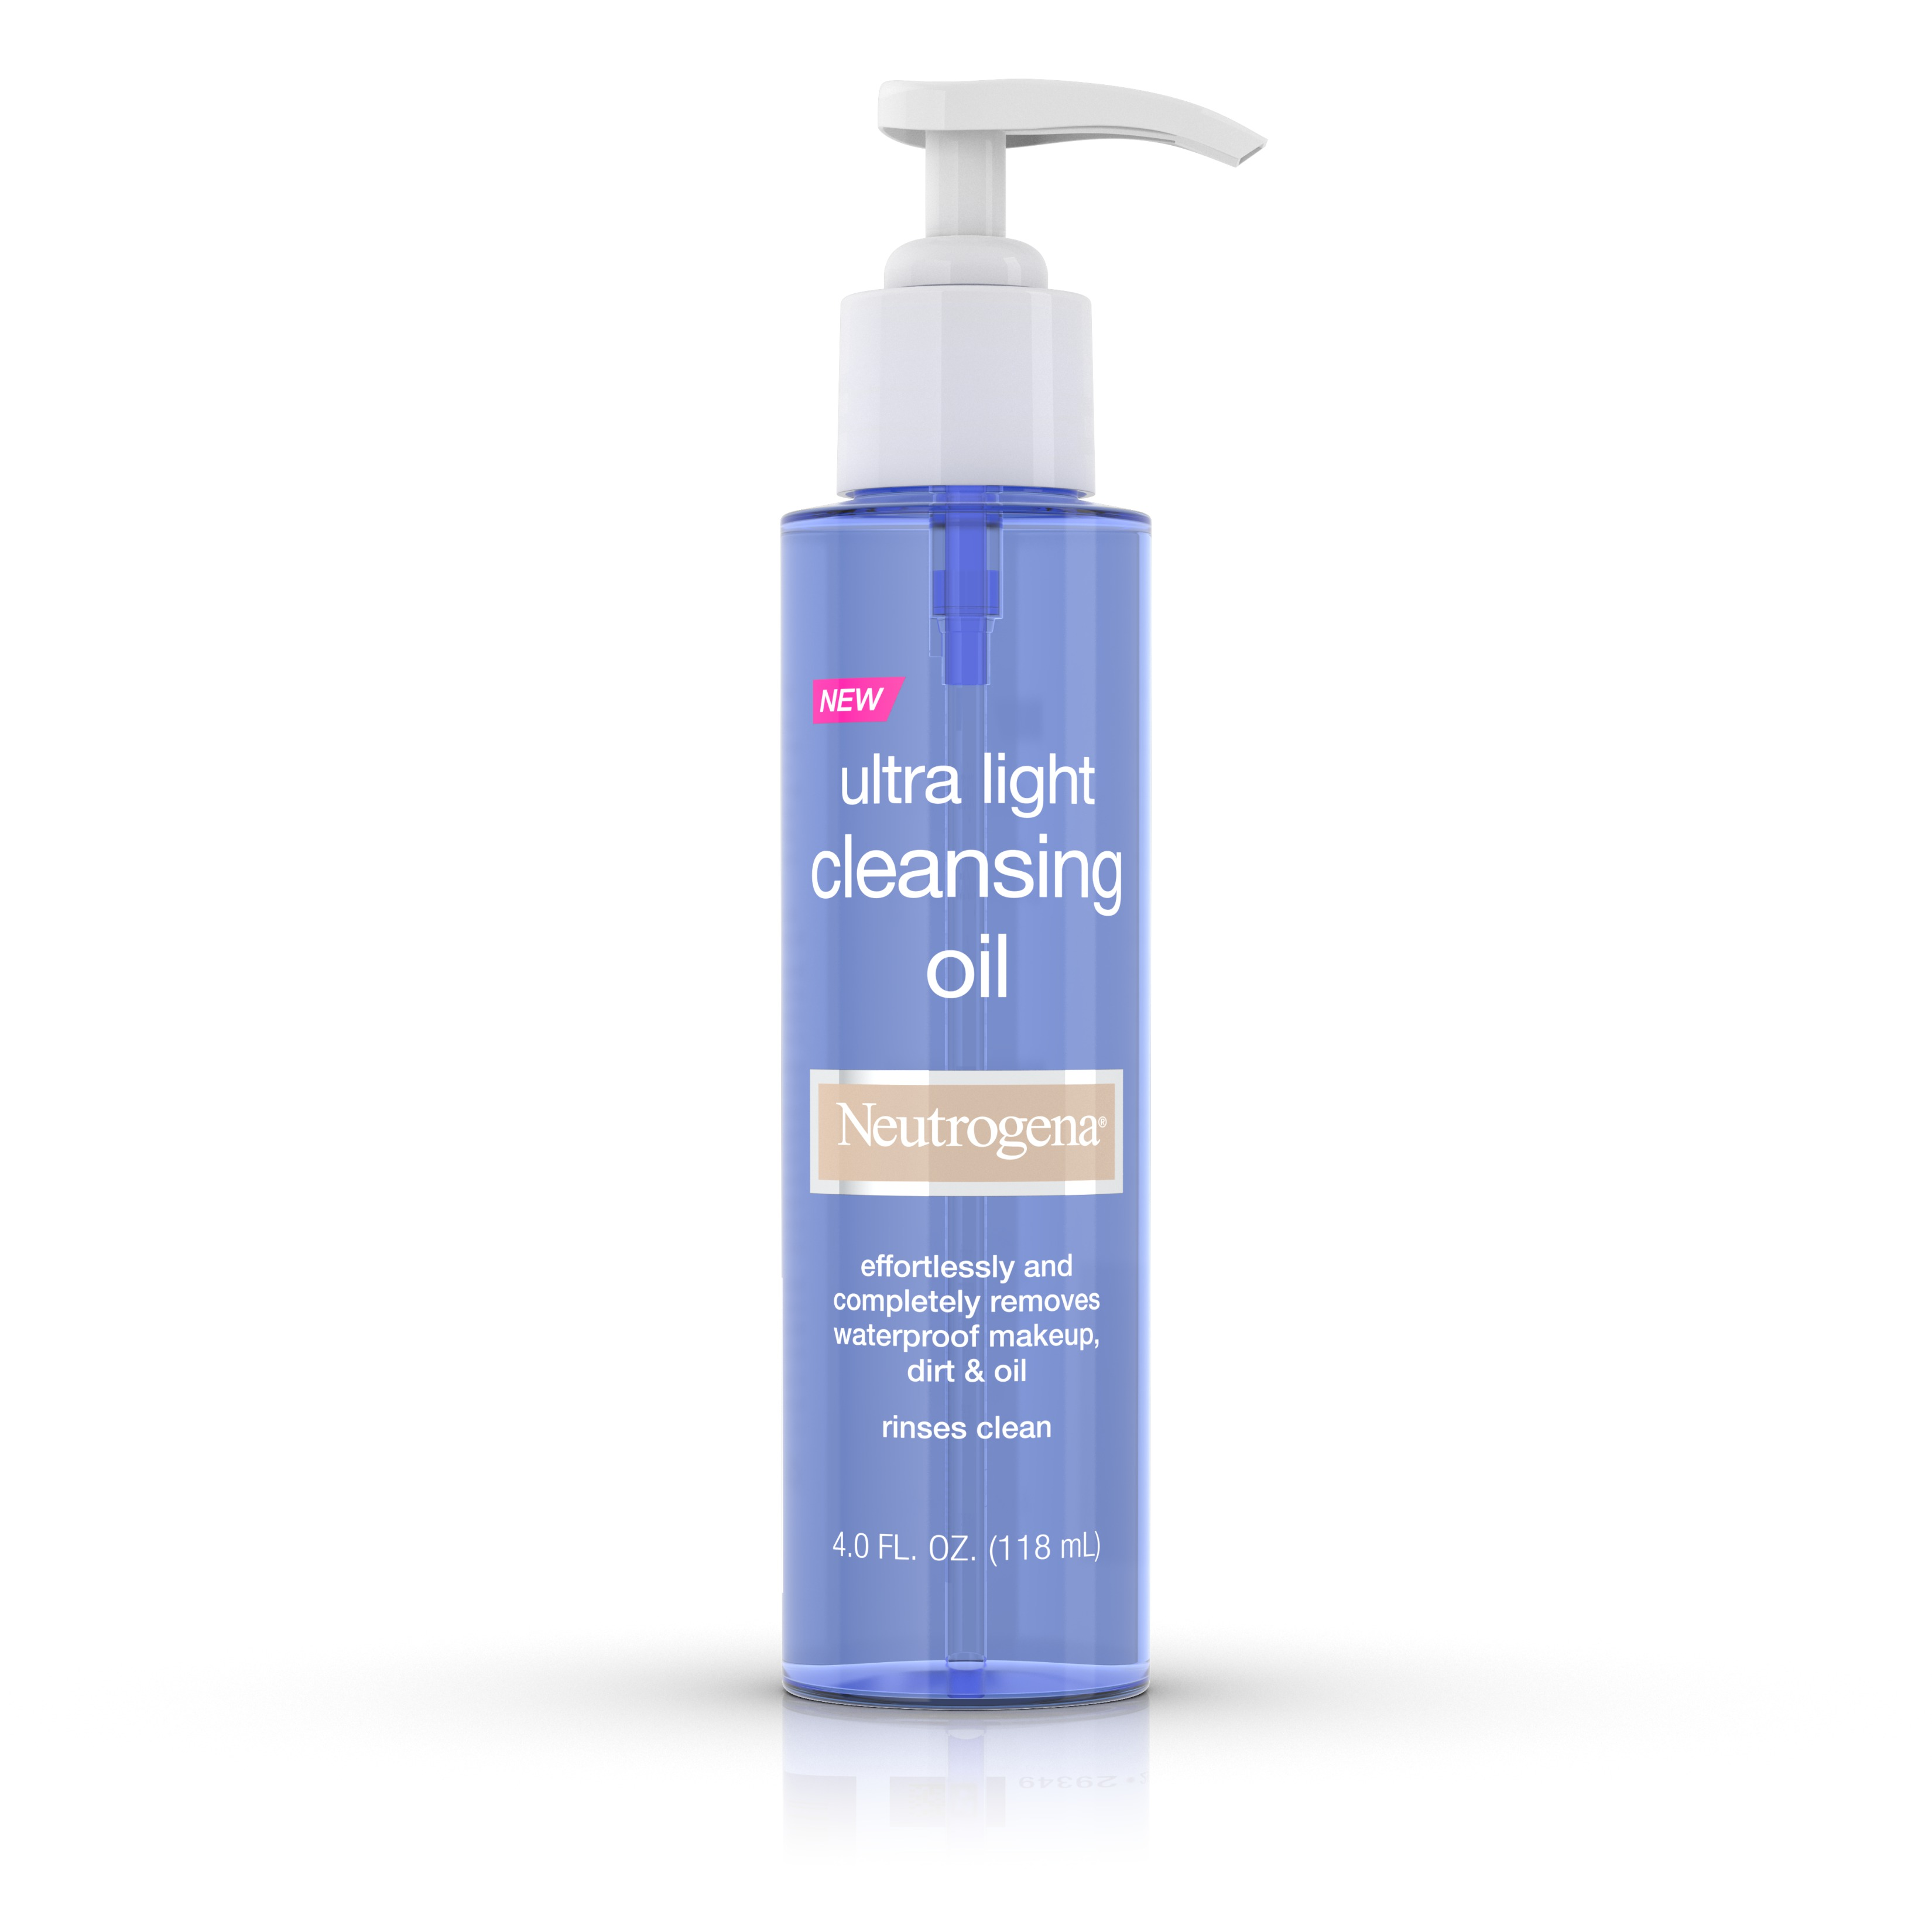 Neutrogena Ultra Light Cleansing Oil & Makeup Remover, 4 Fl. Oz. - Walmart.com